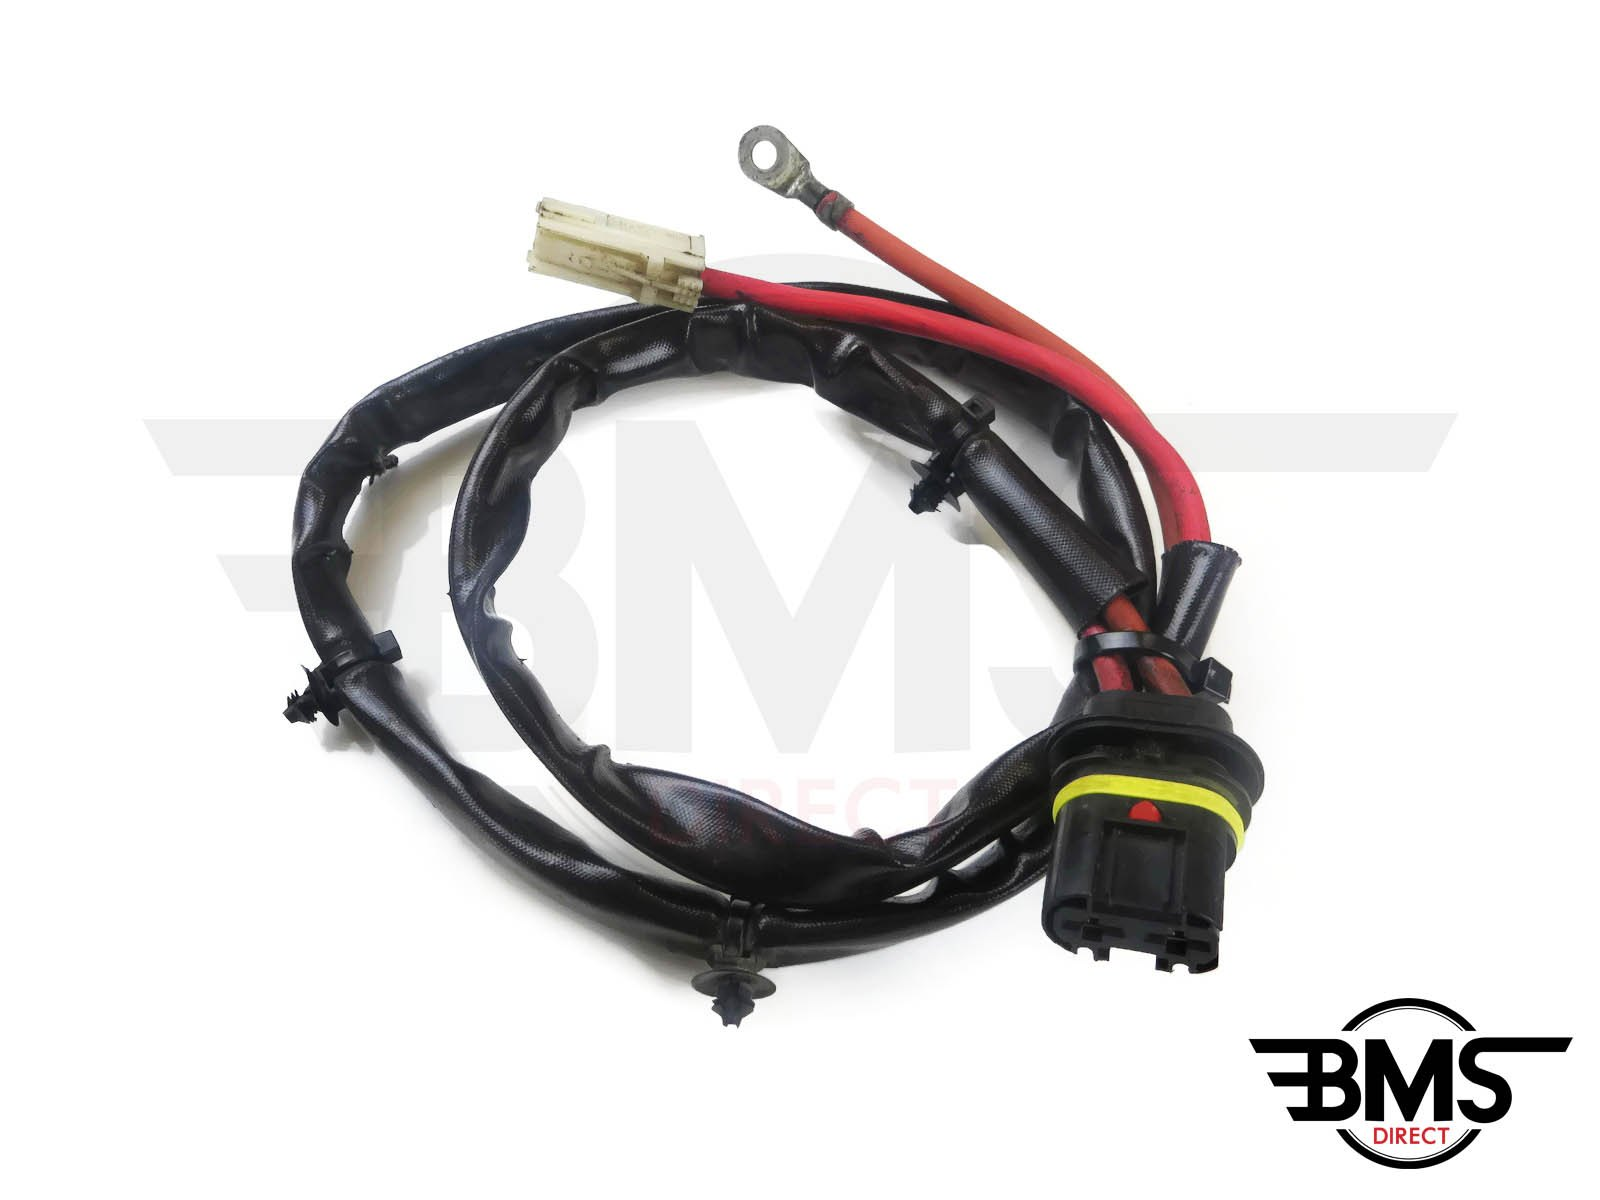 New Power Steering Wiring Harness R50 | BMS Direct Ltd